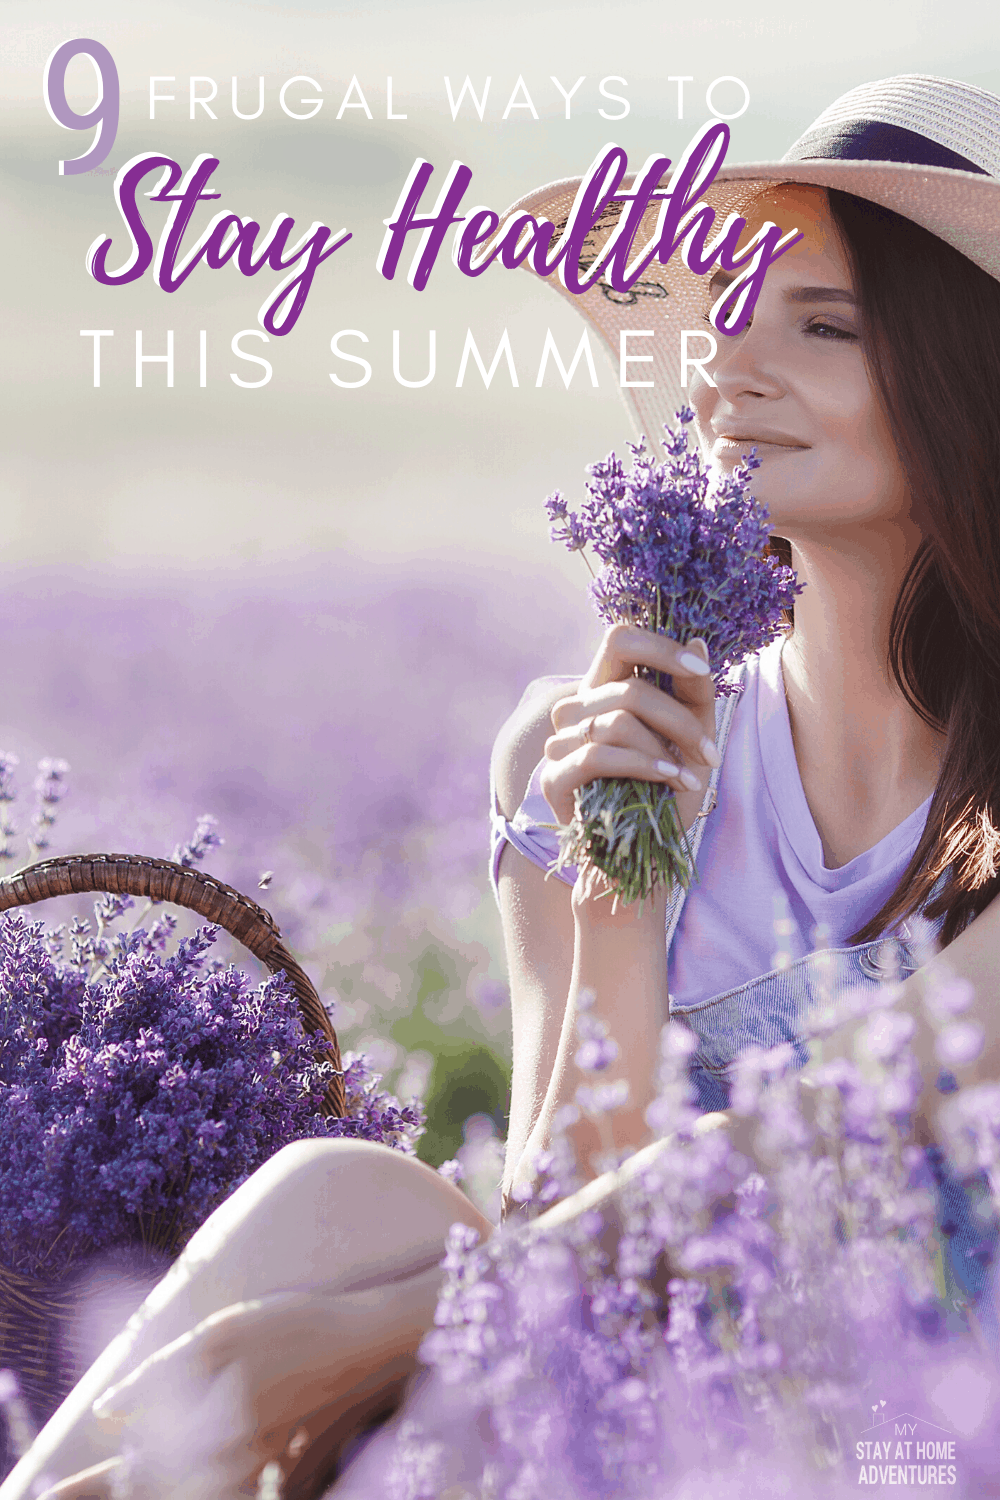 Don't break your healthy habits this 2020 summer season! Learn nine frugal ways to stay healthy this summer that you are going to love! #summer #healthysummer #frugalliving #healthylifestyle via @mystayathome